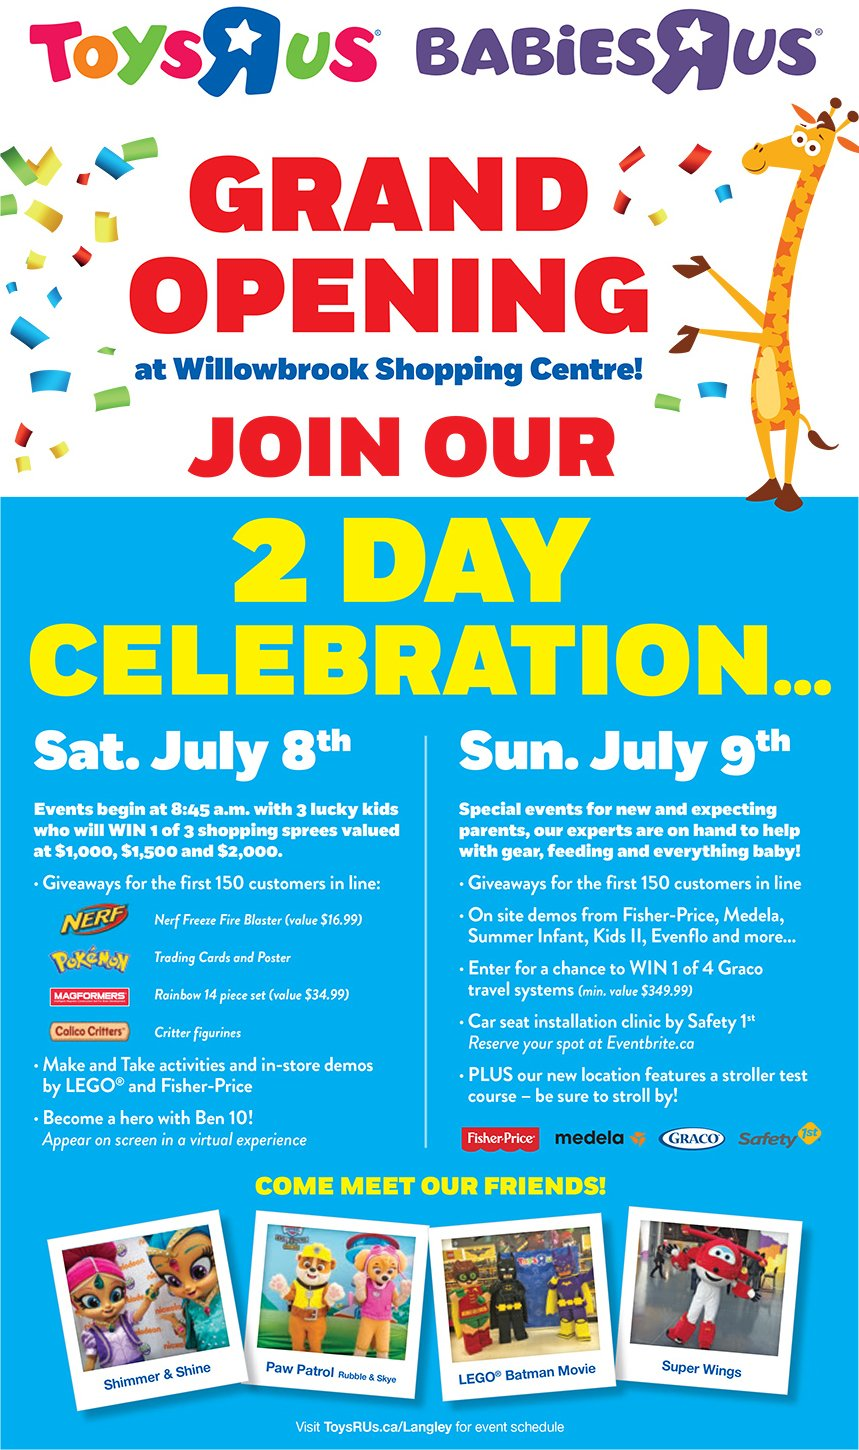 Toys R Us Langley Grand Opening July 8 And 9 This West